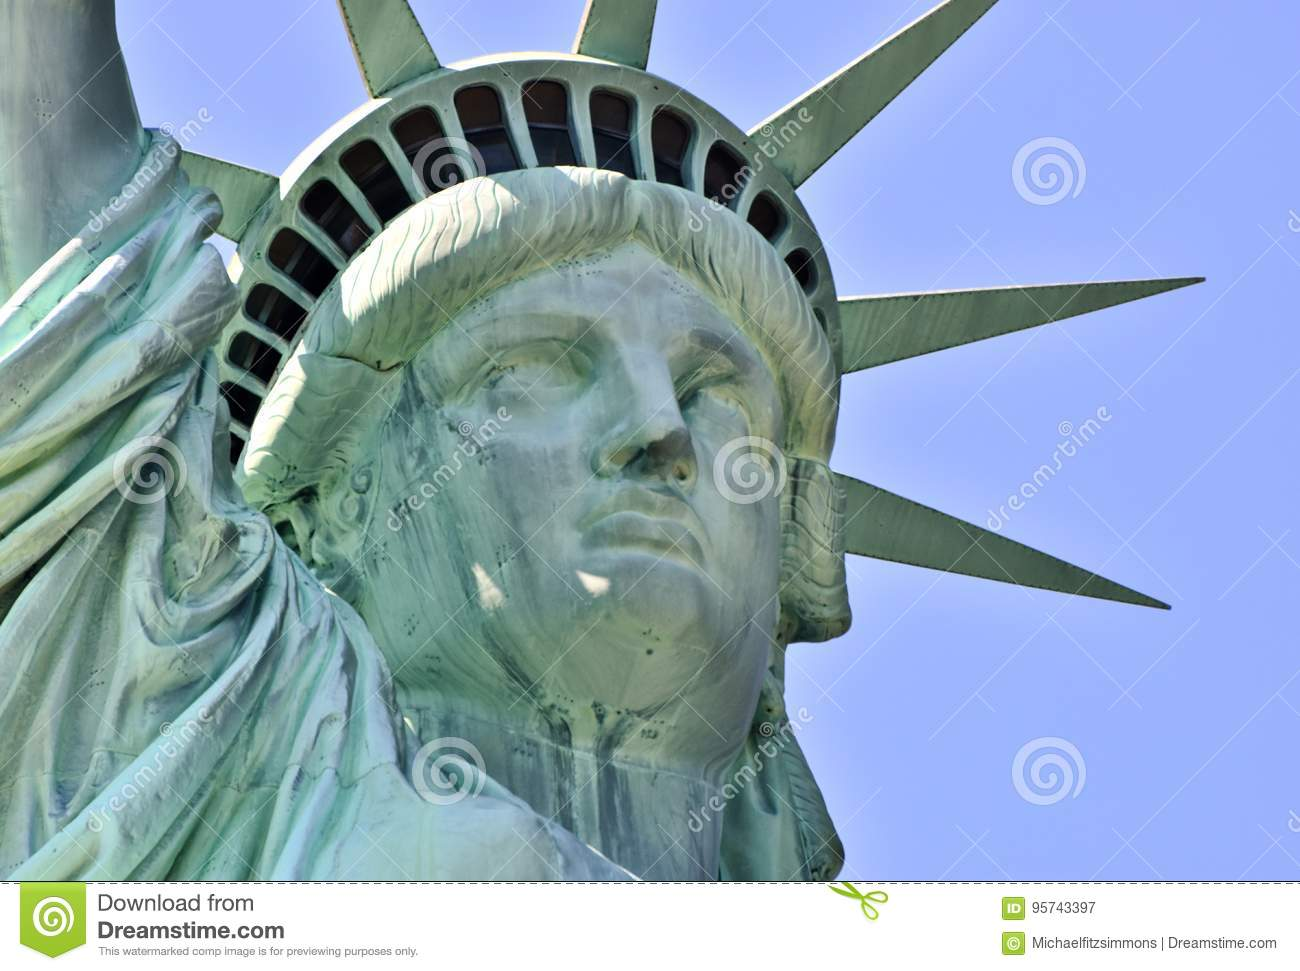 81c877cf8dce1 Face Of The Statue Of Liberty Stock Image - Image of green, york ...